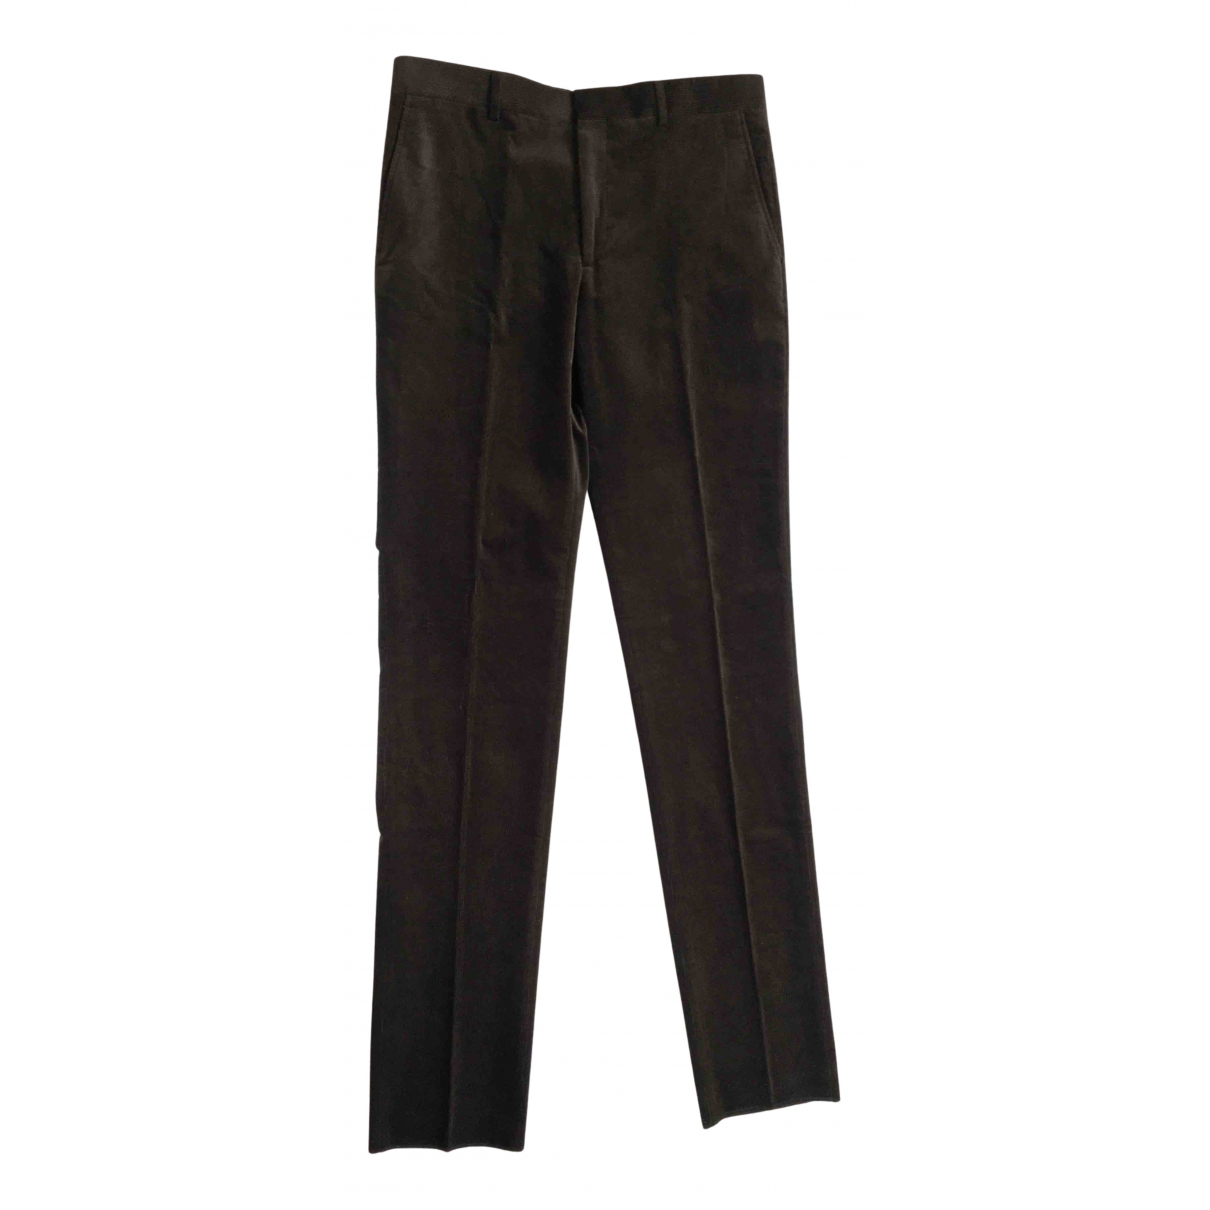 Polo Ralph Lauren N Brown Cotton Trousers for Men 38 UK - US